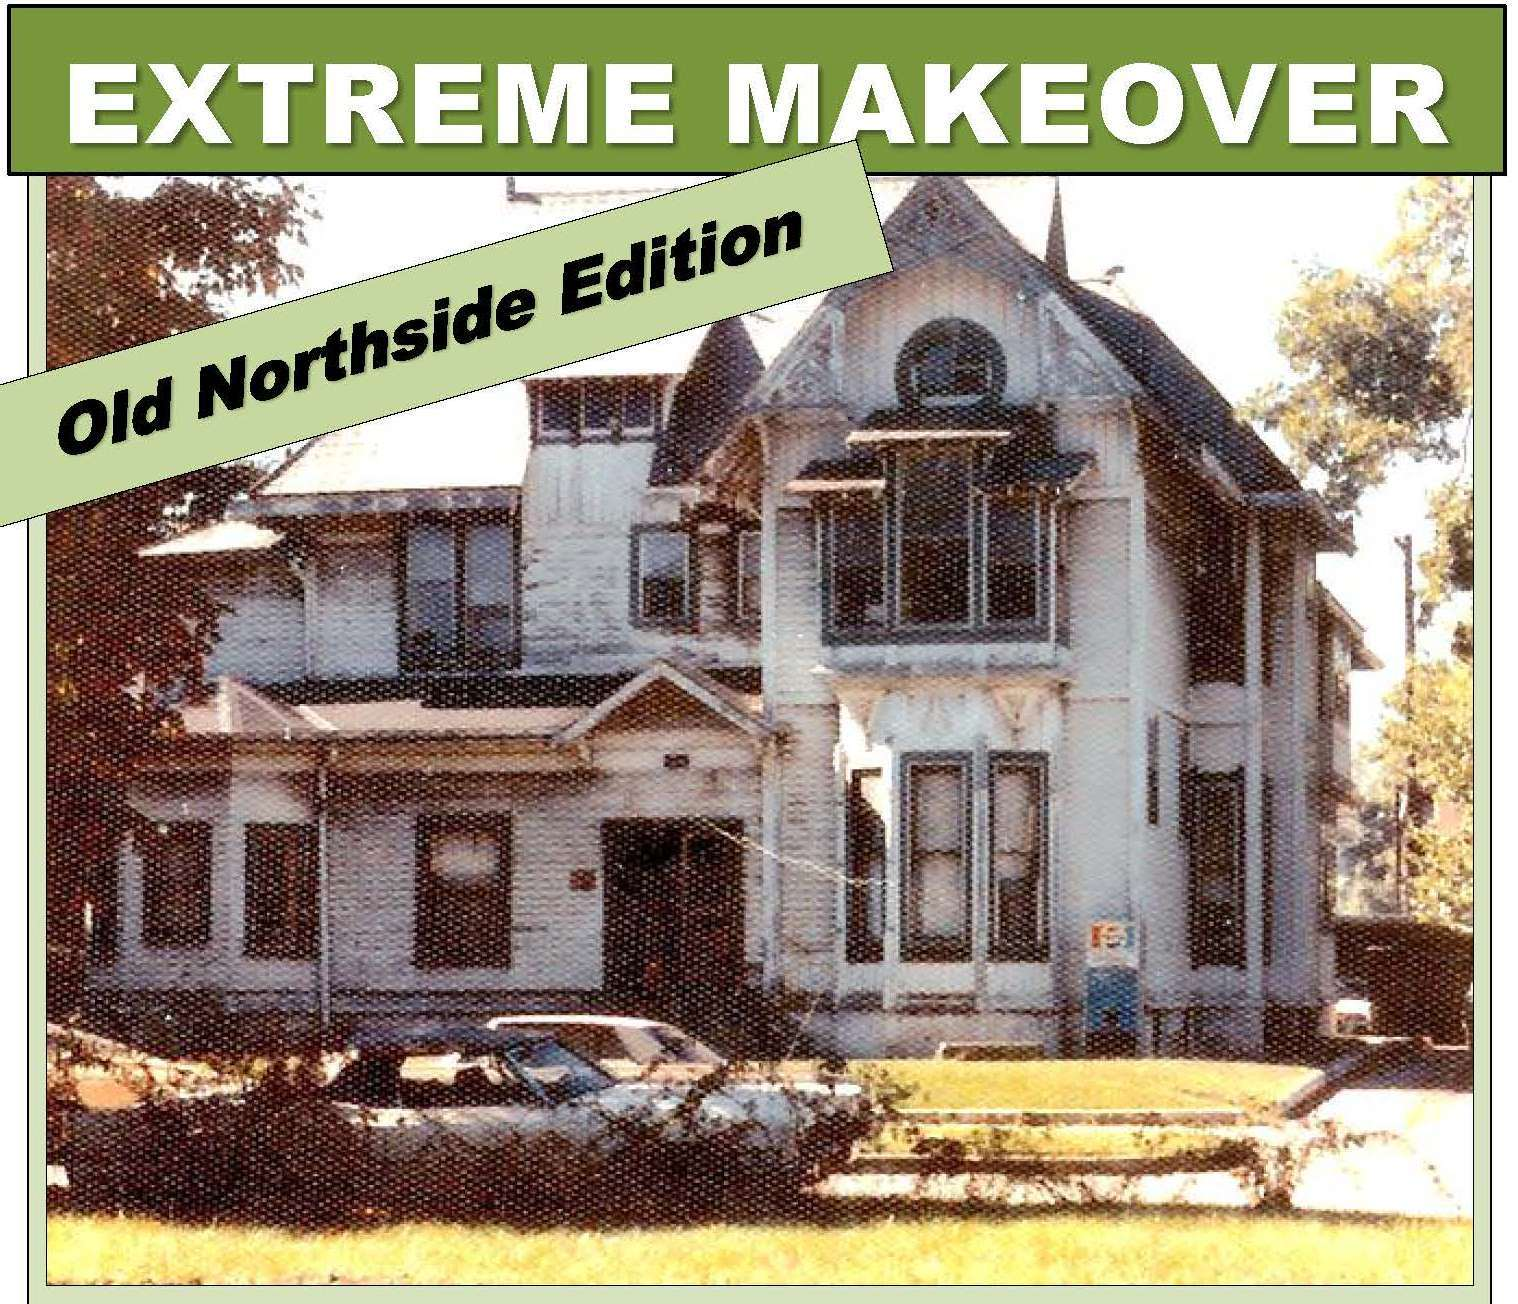 Indianapolis Collected Revisted: The Fall and Rise of the Old Northside